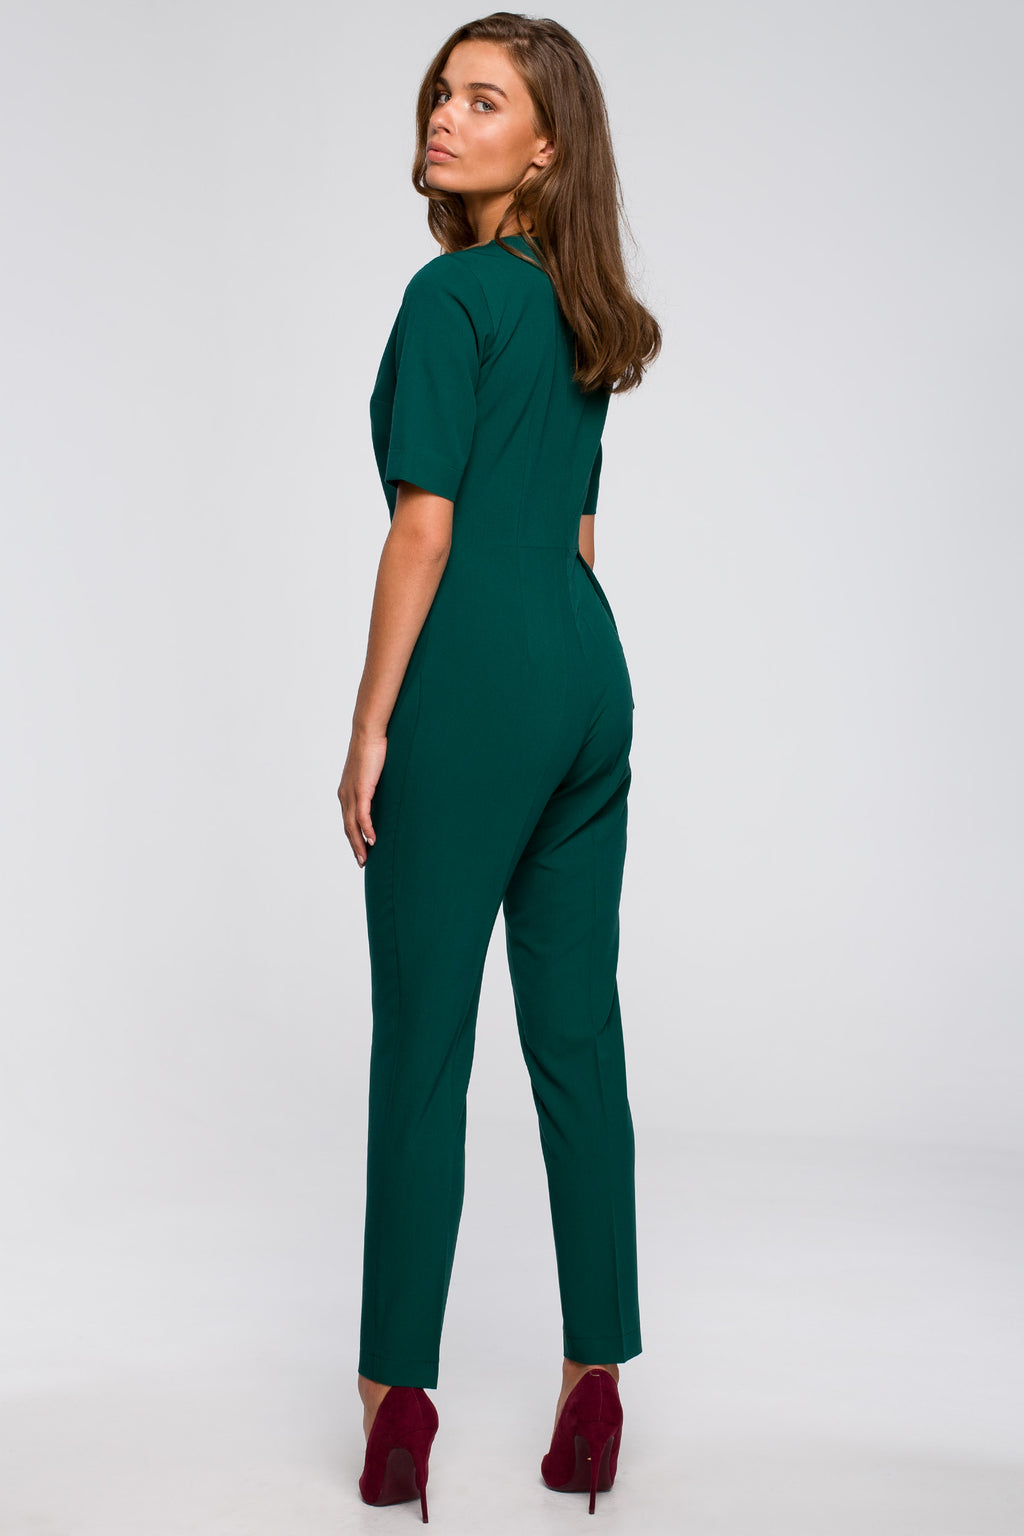 Green Jumpsuit With An Asymmetric Wrap Front - So Chic Boutique